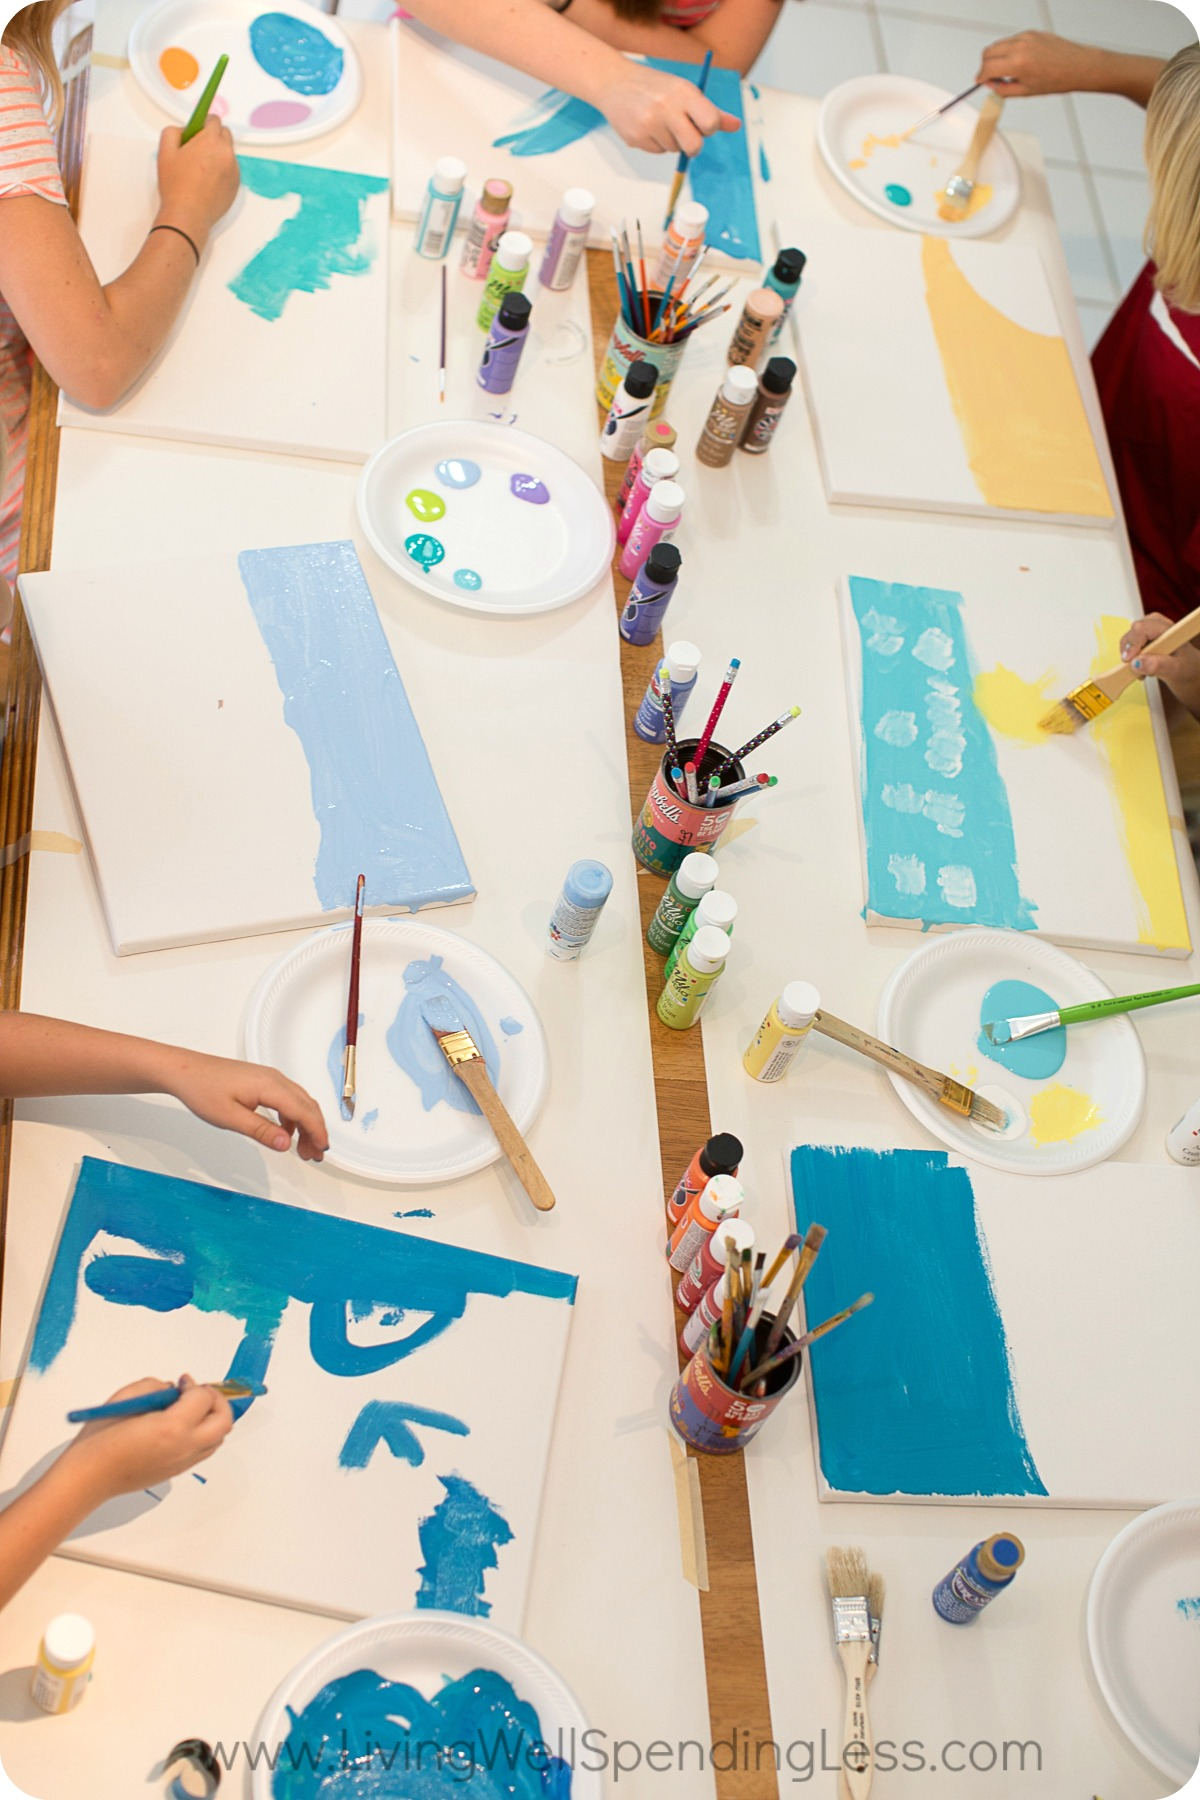 Organize materials onto table and let children begin to paint with acrylic paints.